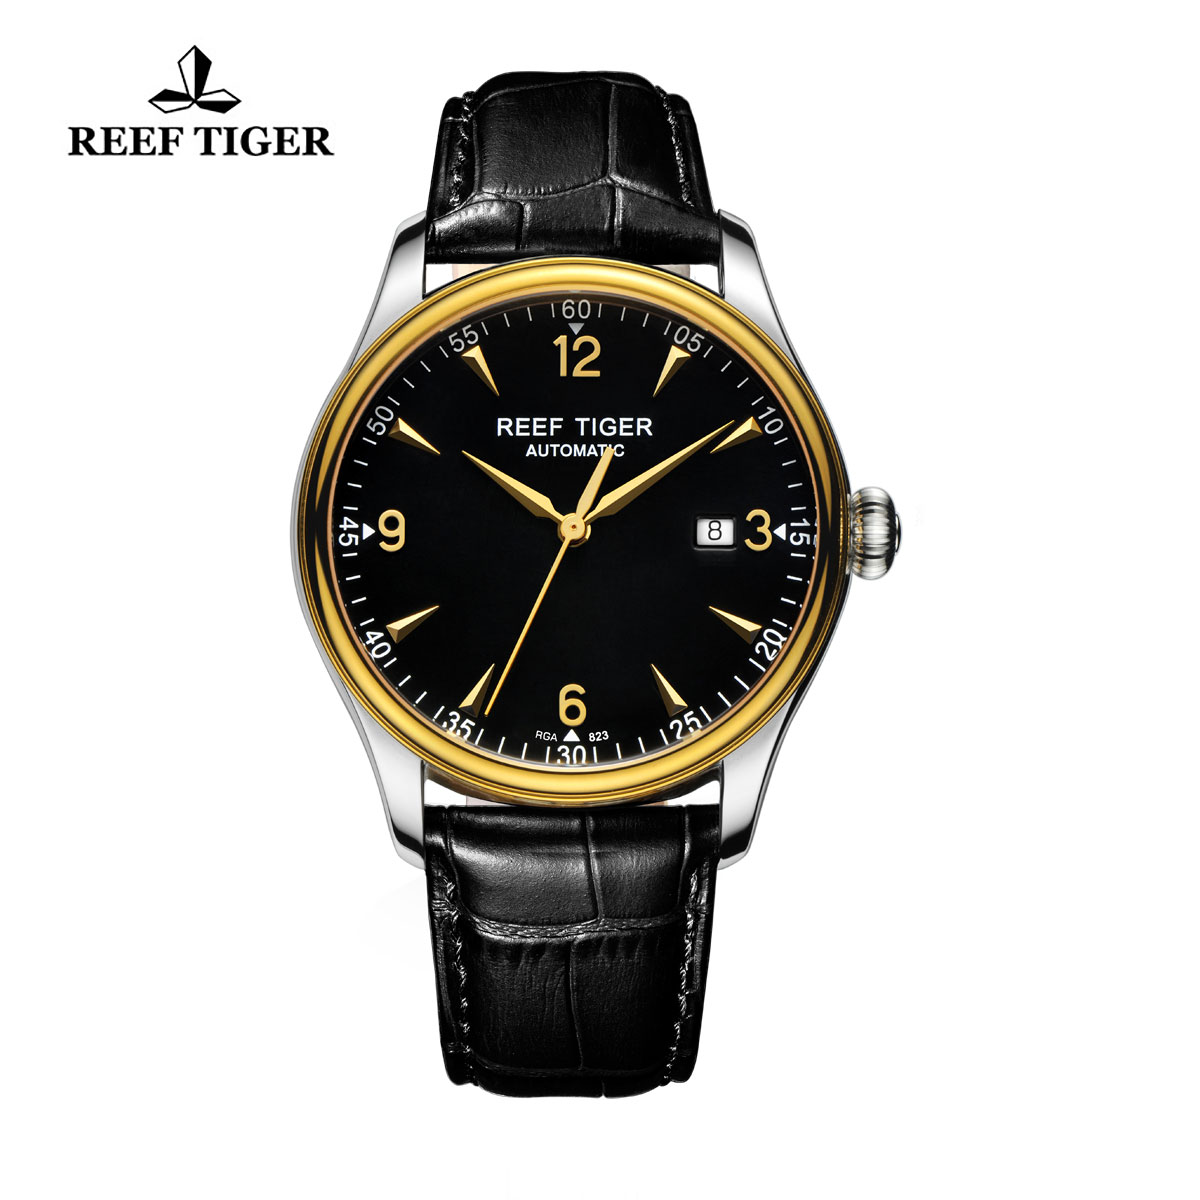 Reef Tiger Heritage Dress Watch Automatic Black Dial Calfskin Leather Strap RGA823-TBB